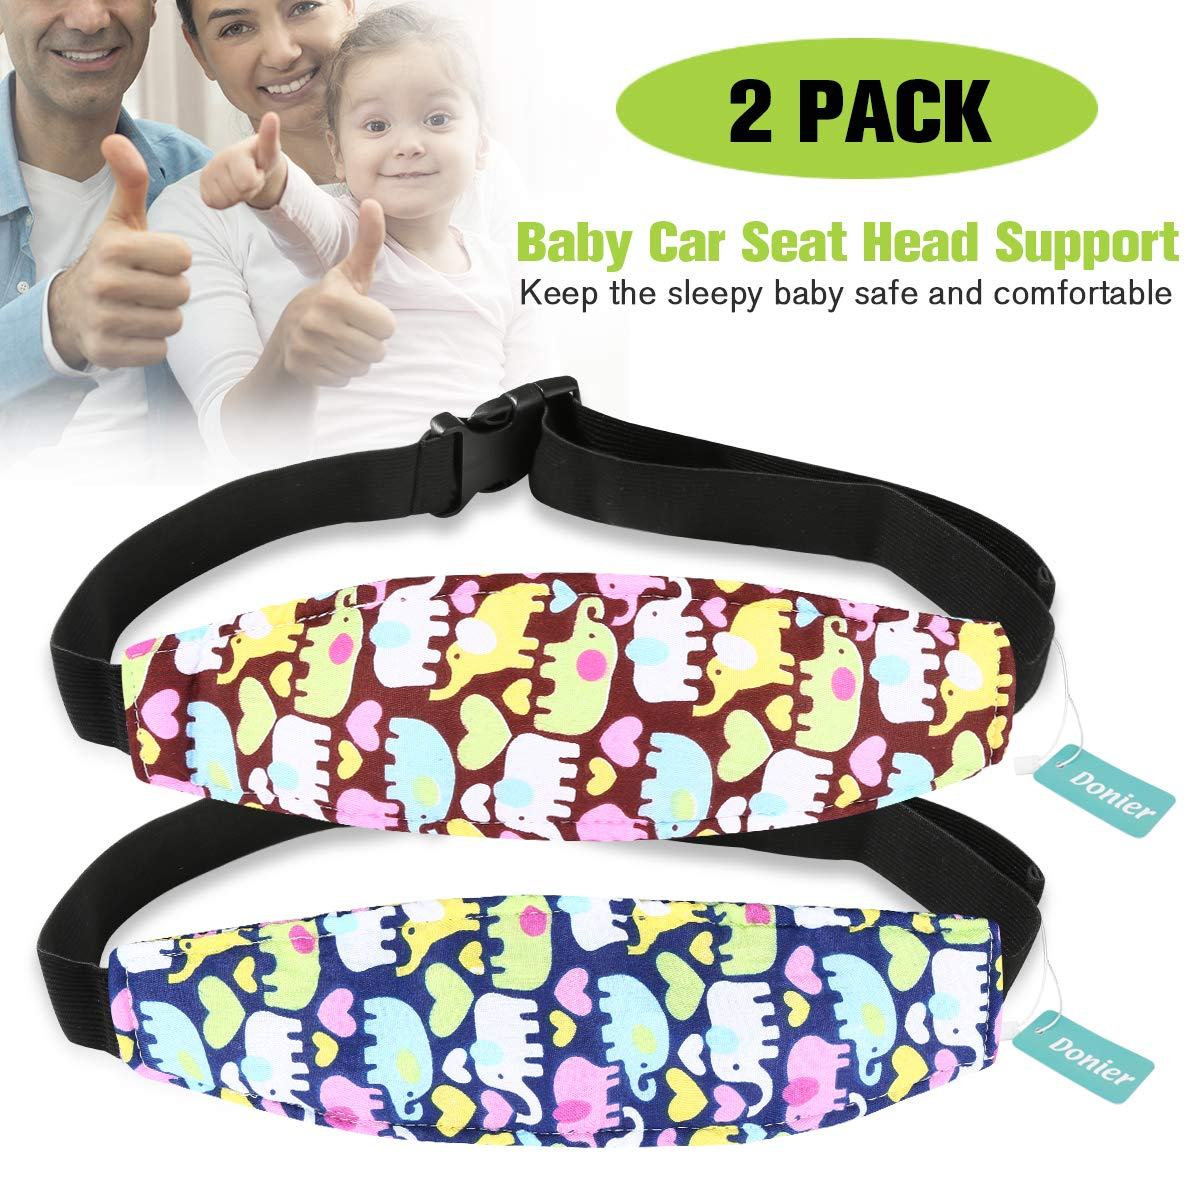 2 Packs Toddler Car Seat Neck Relief and Head Support, Pillow Support Head Band Easy Installation On Most Convertible Seats and Safety to Babies and Kids(Elephant)